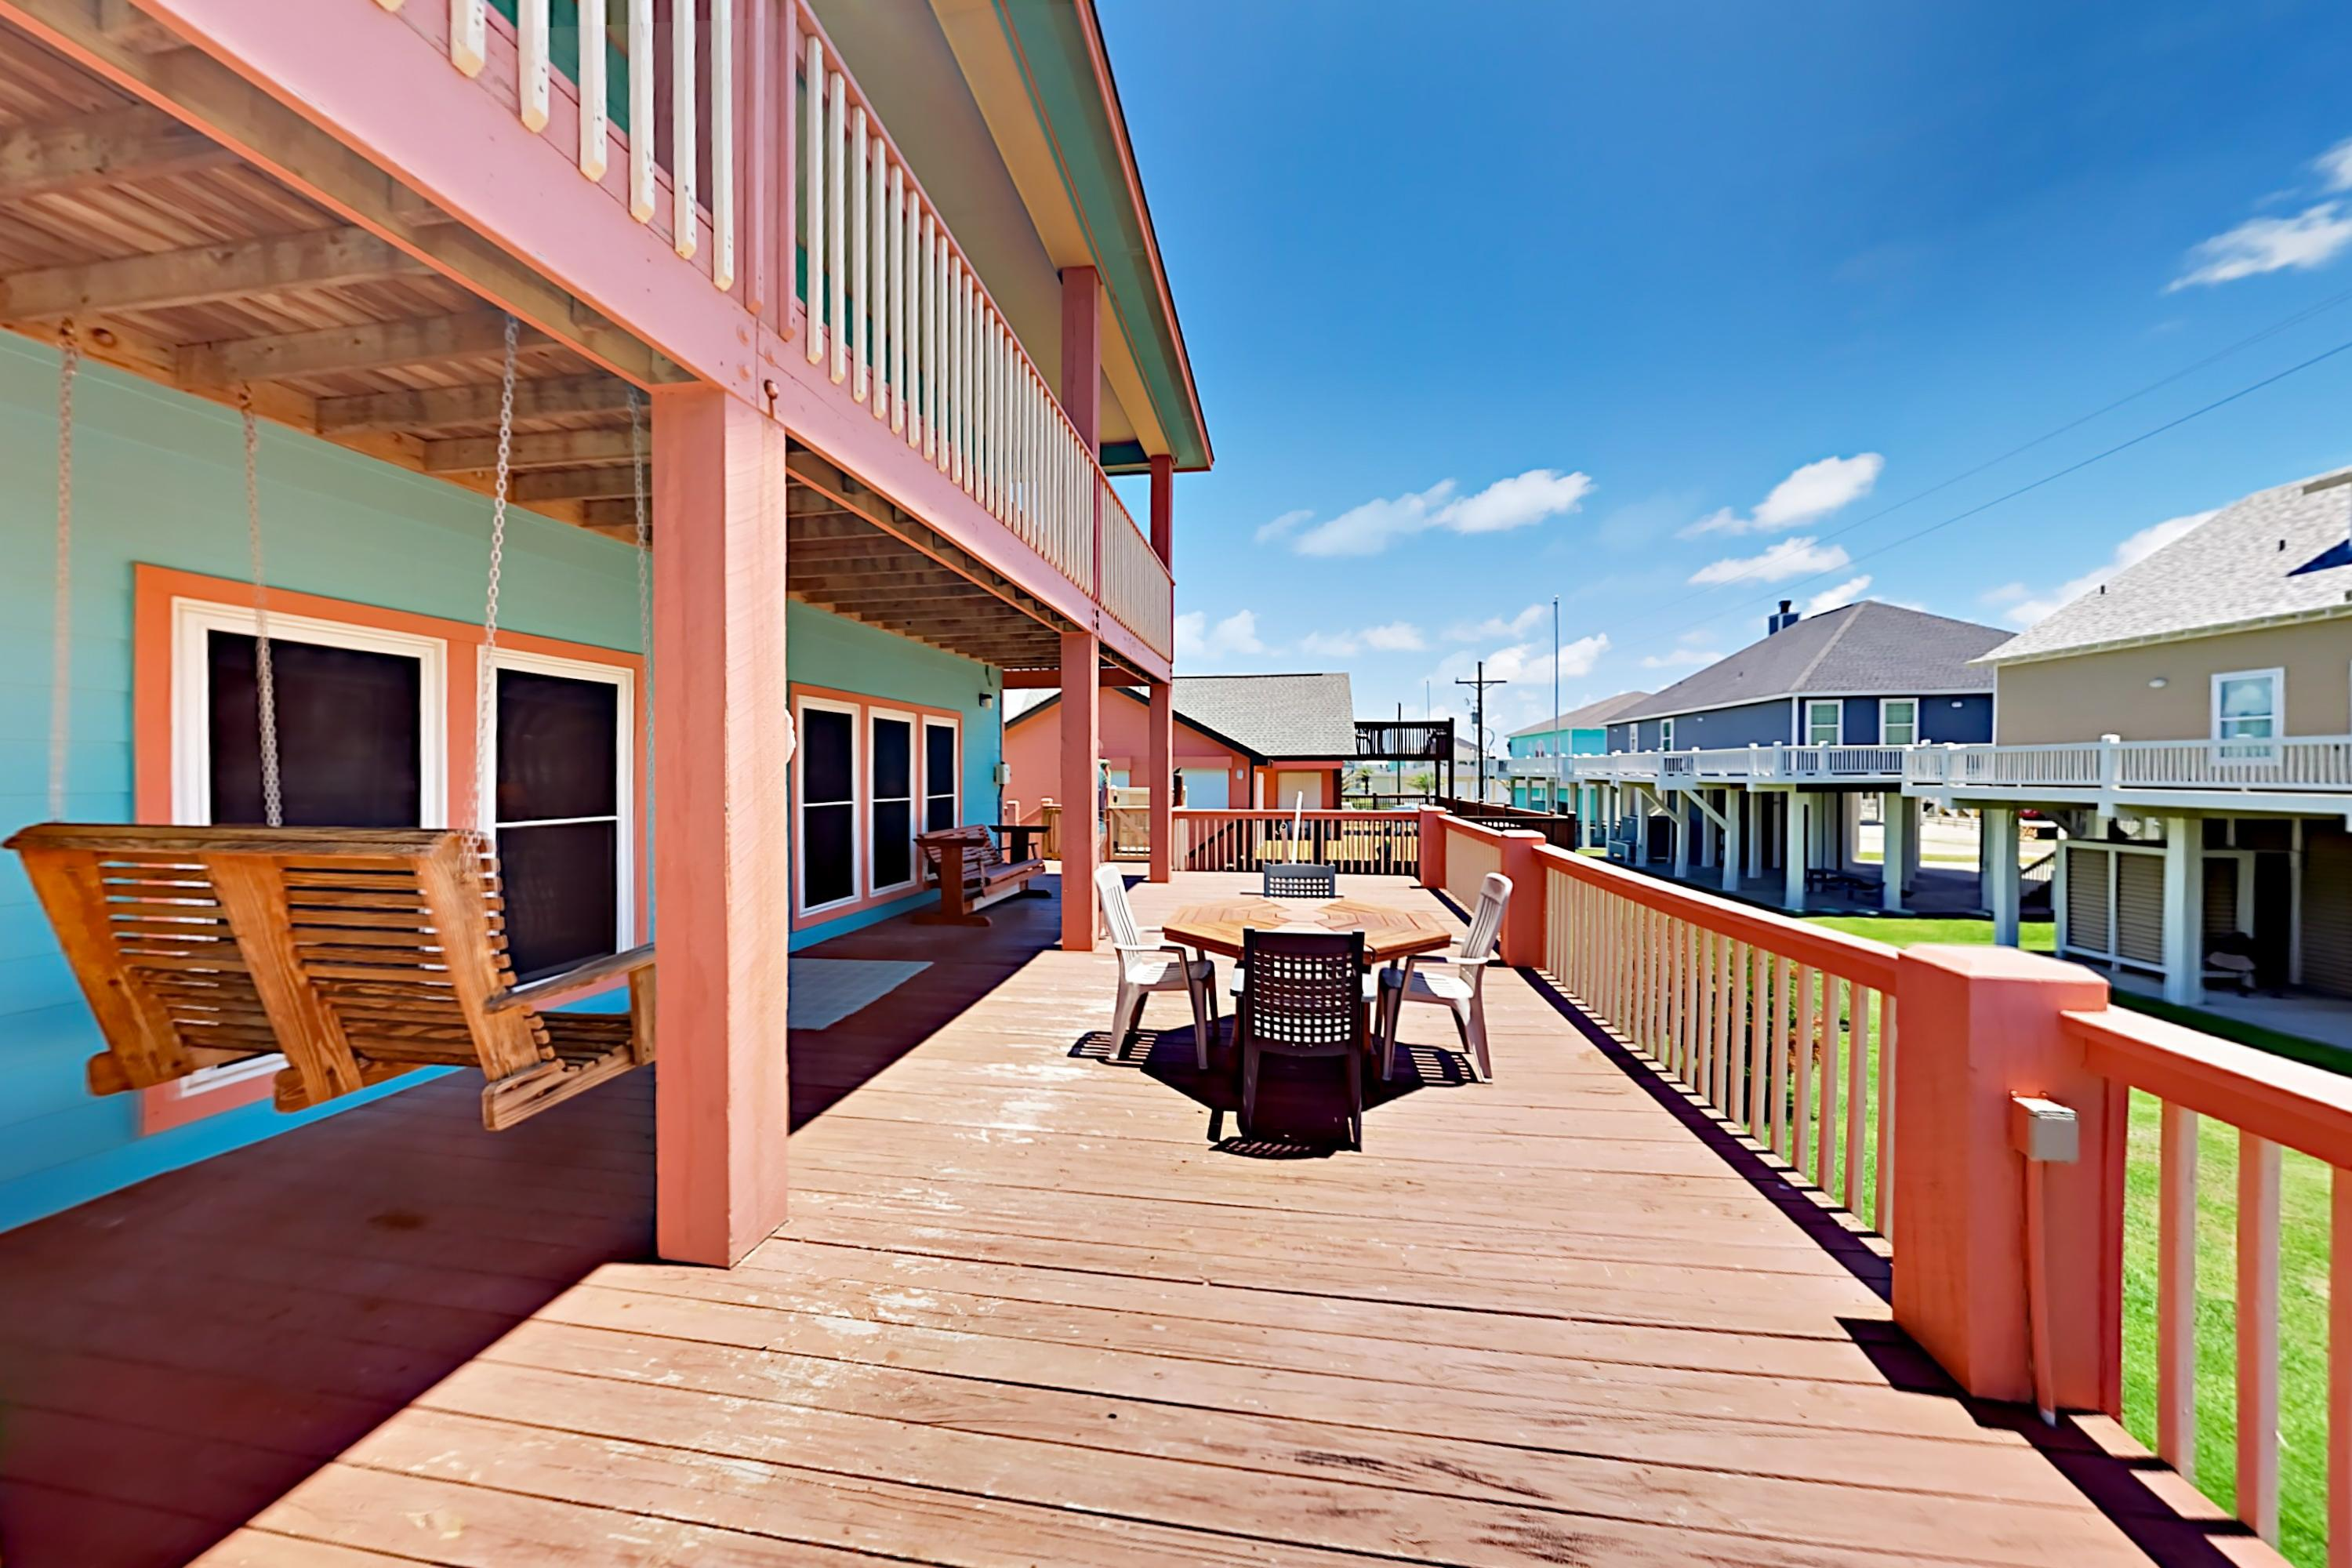 Property Image 2 - Welcoming Coastal Home with Large Deck; Minutes to Beach